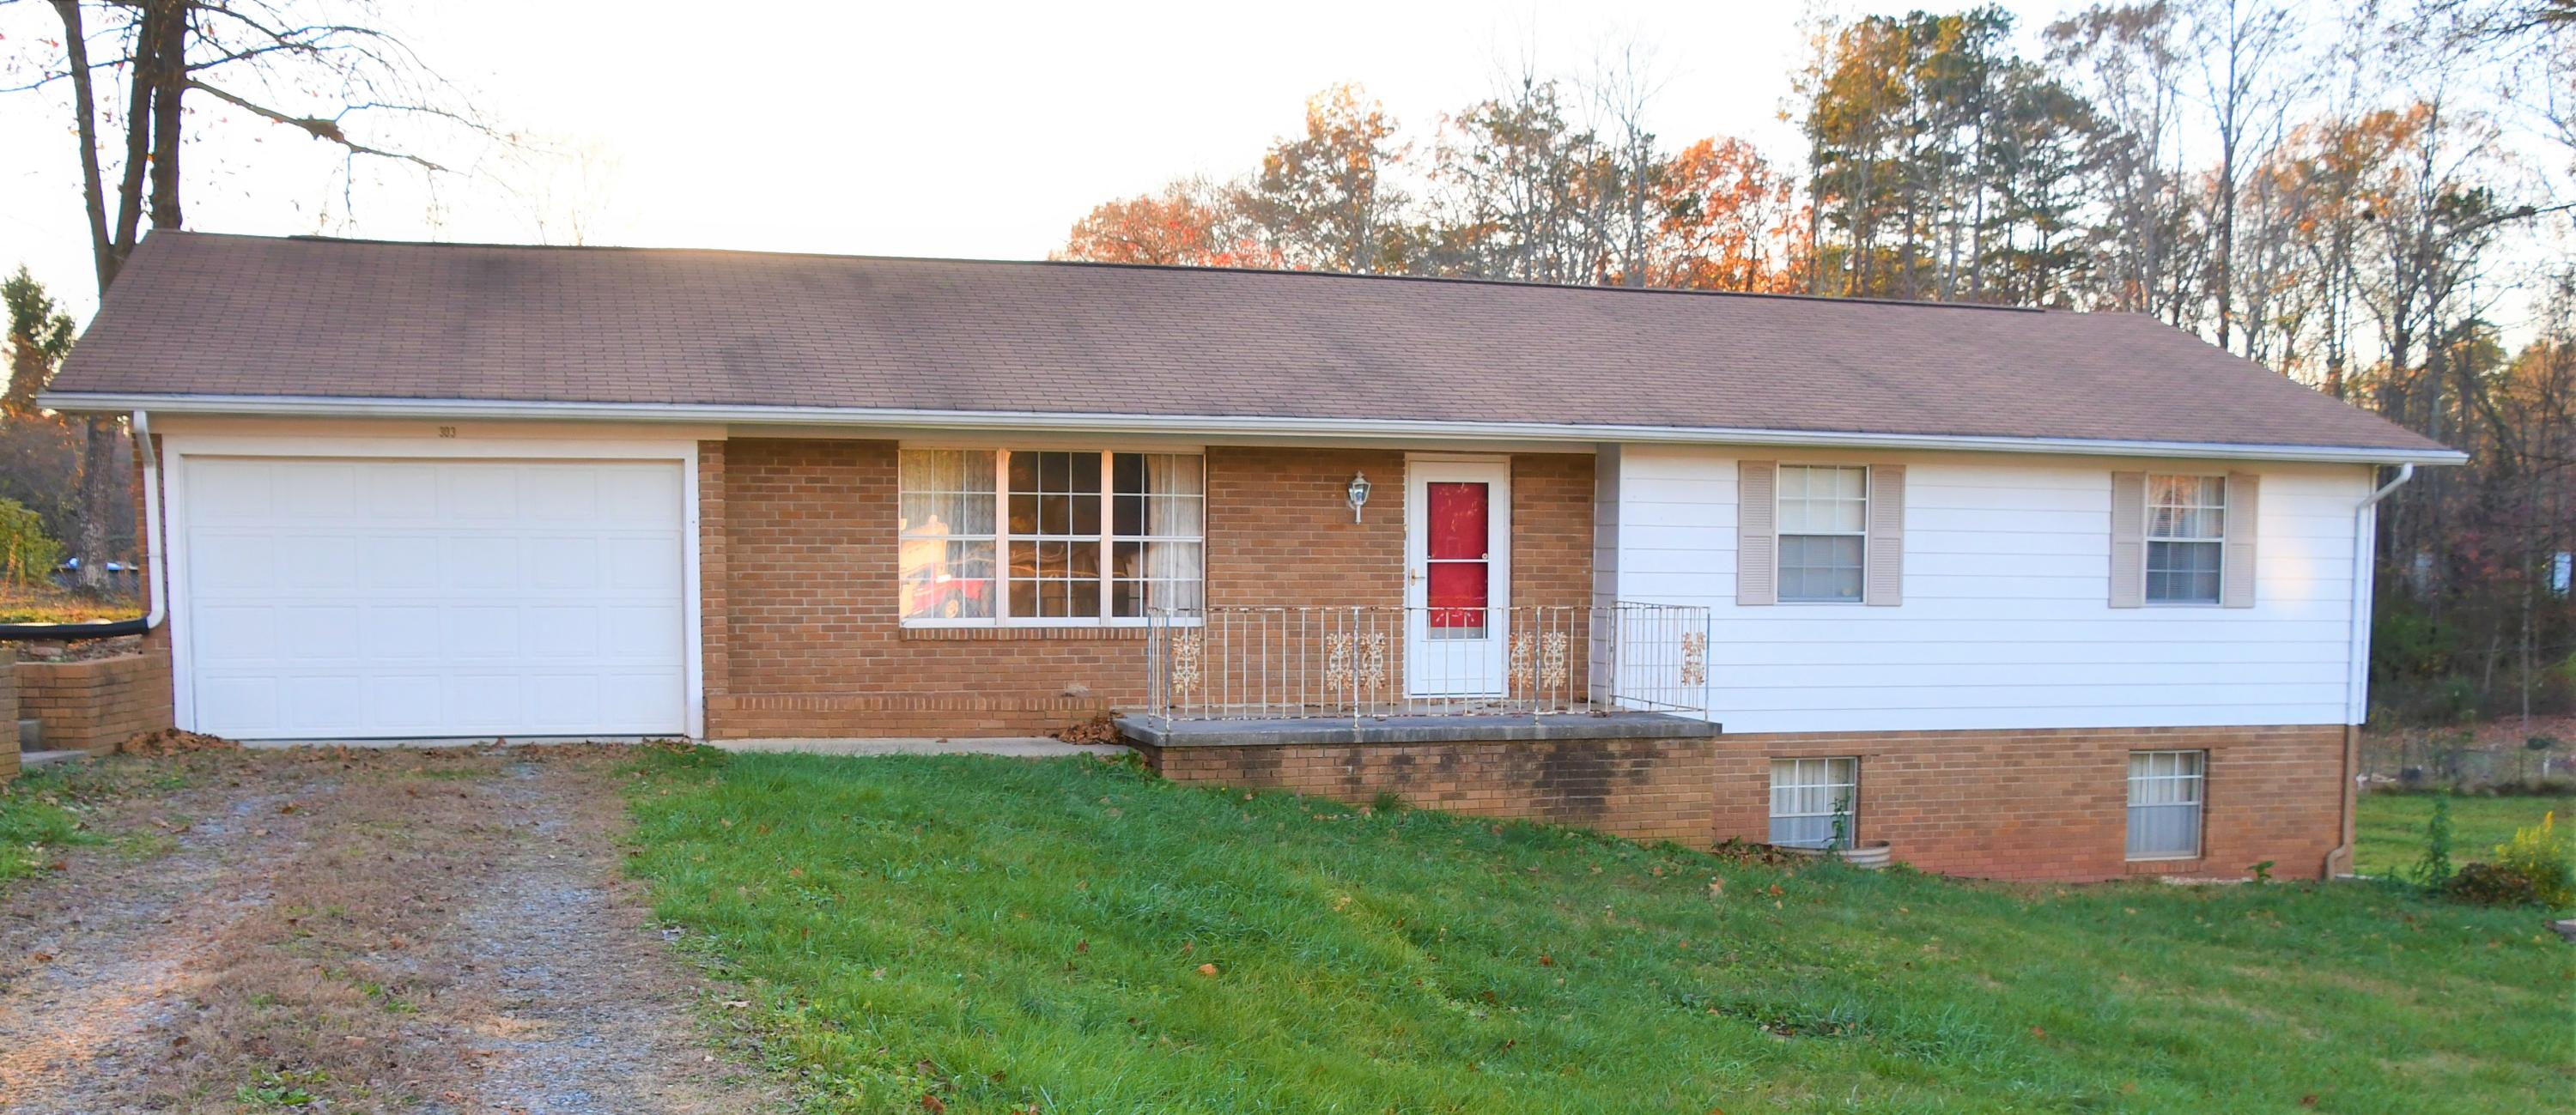 Property for sale at 303 Allen Rd, Knoxville,  Tennessee 37920